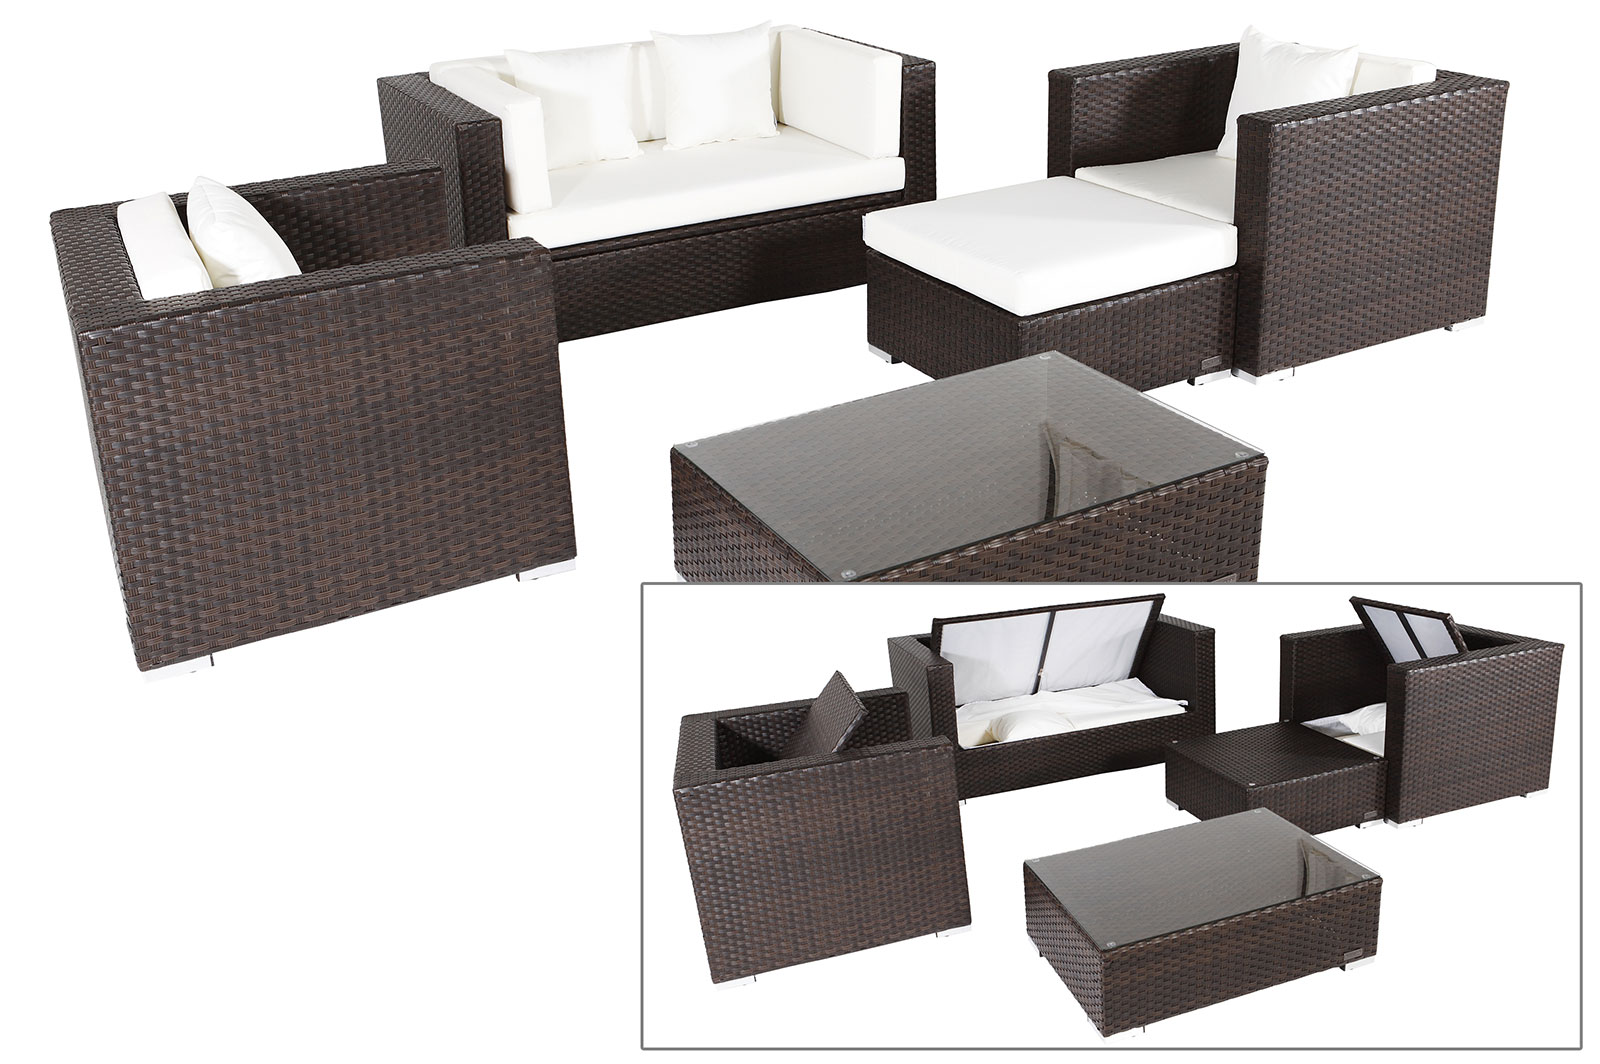 outflexx gartenm bel sitzgruppe aus polyrattan. Black Bedroom Furniture Sets. Home Design Ideas